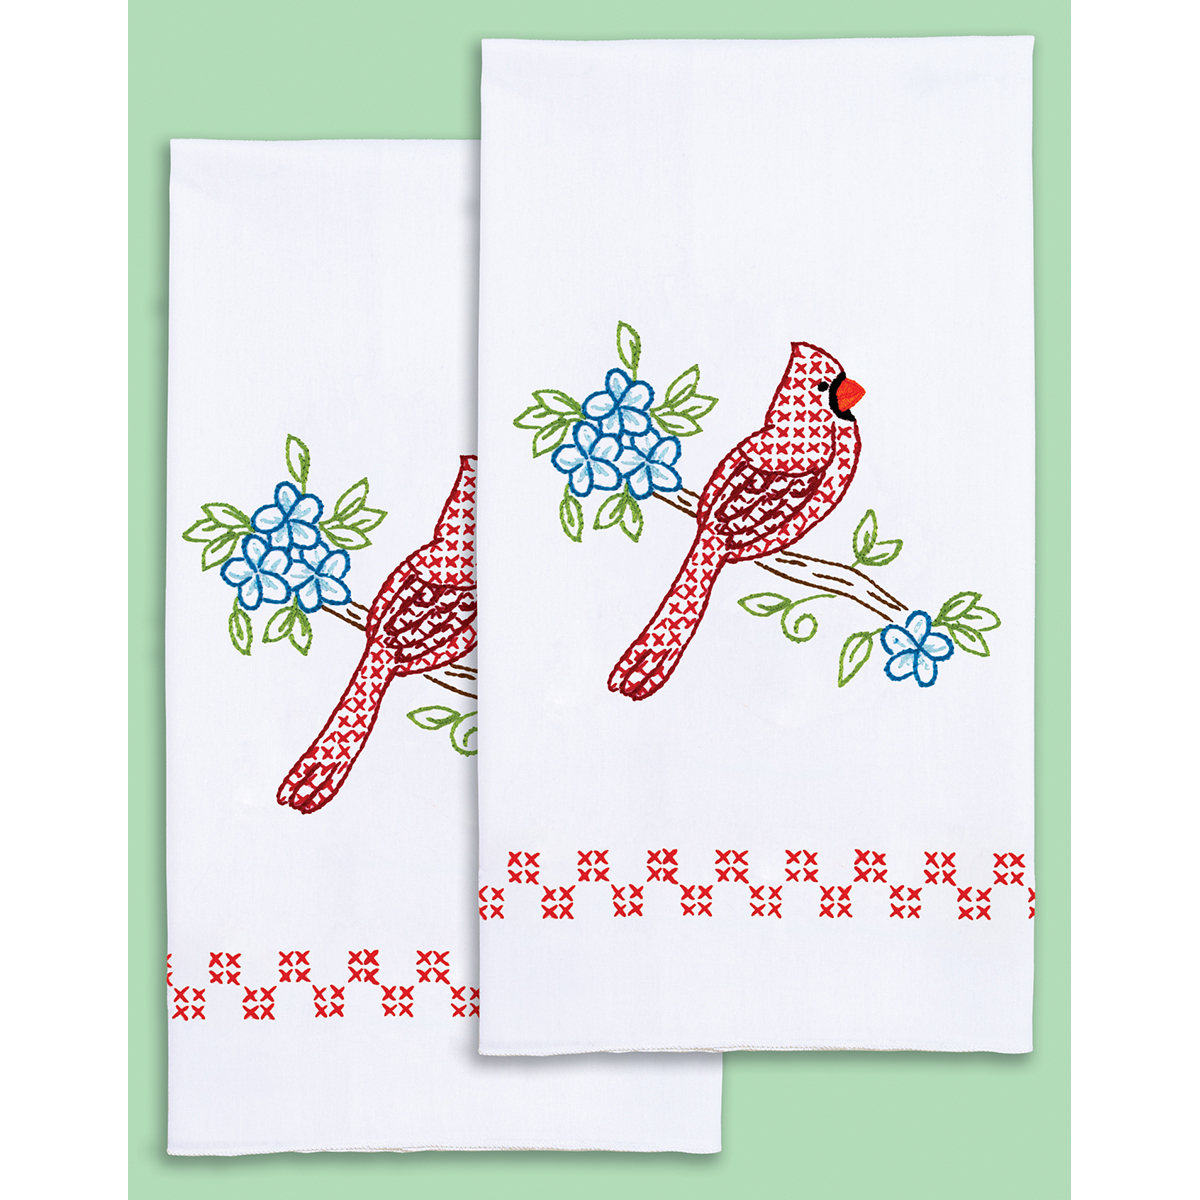 Stamped Embroidery Hand Towels - Cardinals